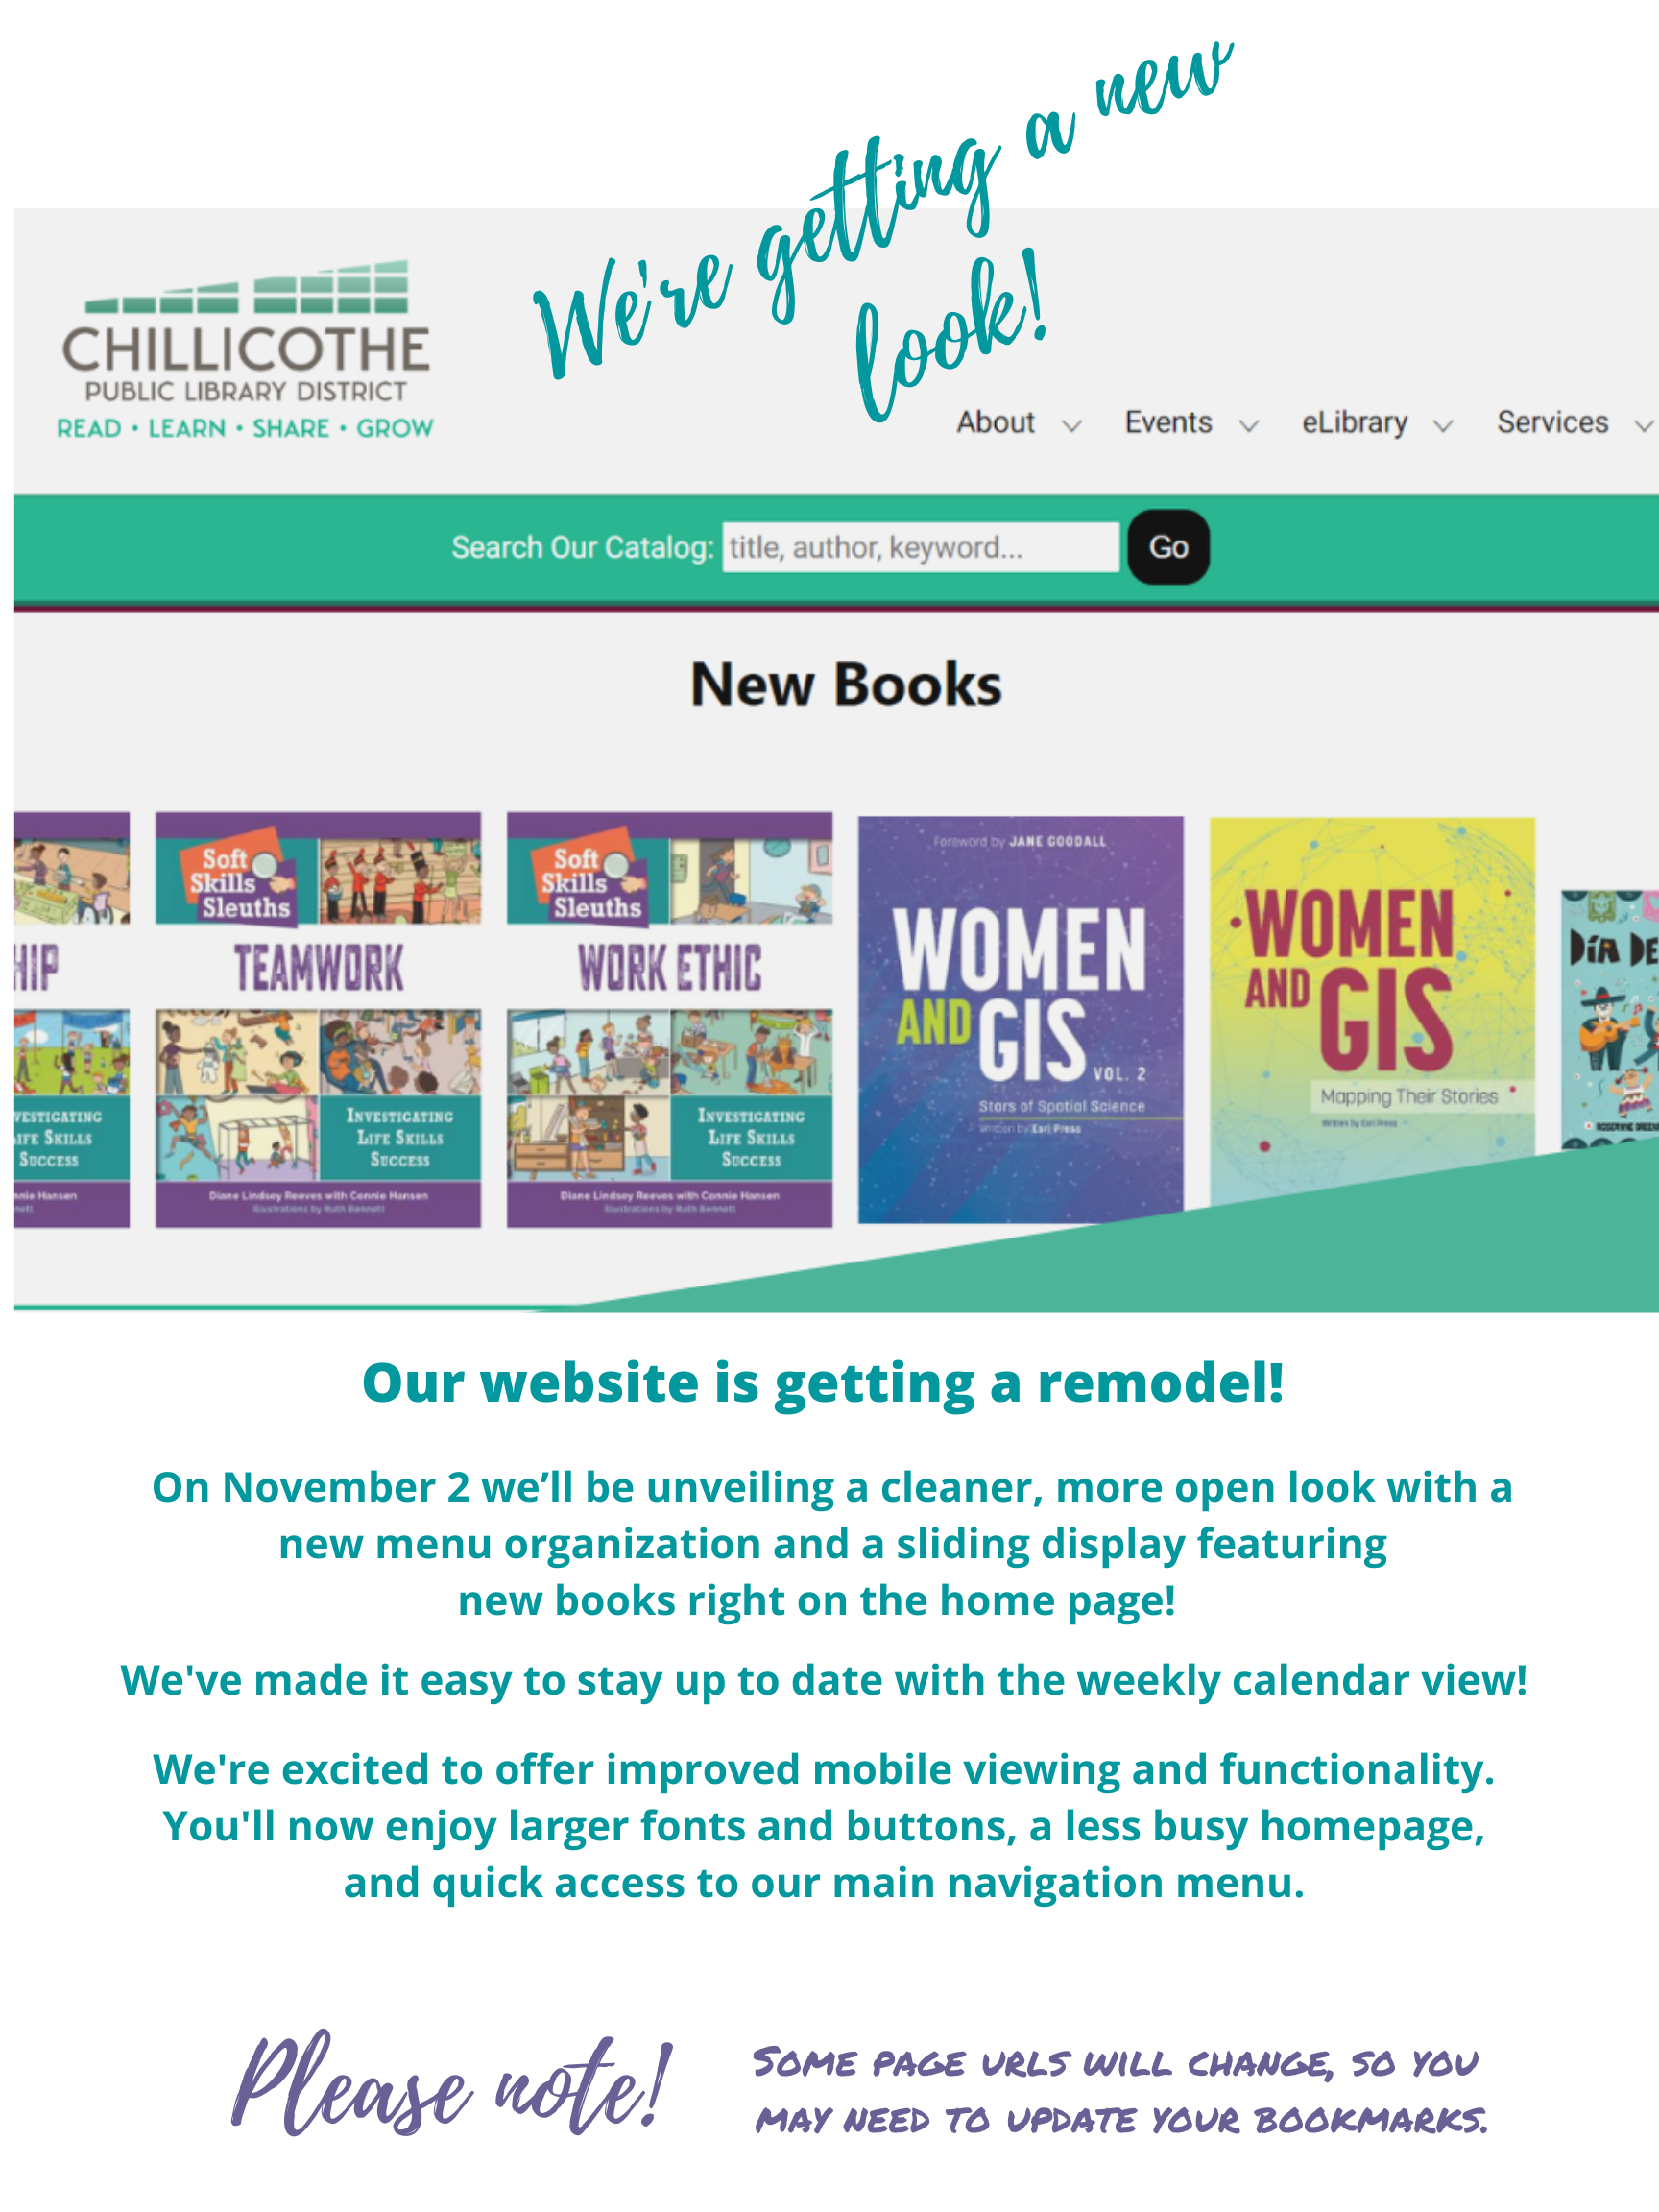 Our website is changing November 2! Enjoy a cleaner layout, easier navigation, better mobile device functionality, and new home page features like a weekly calendar view and new book slider. Some urls are changing, so you may need to update bookmarks.